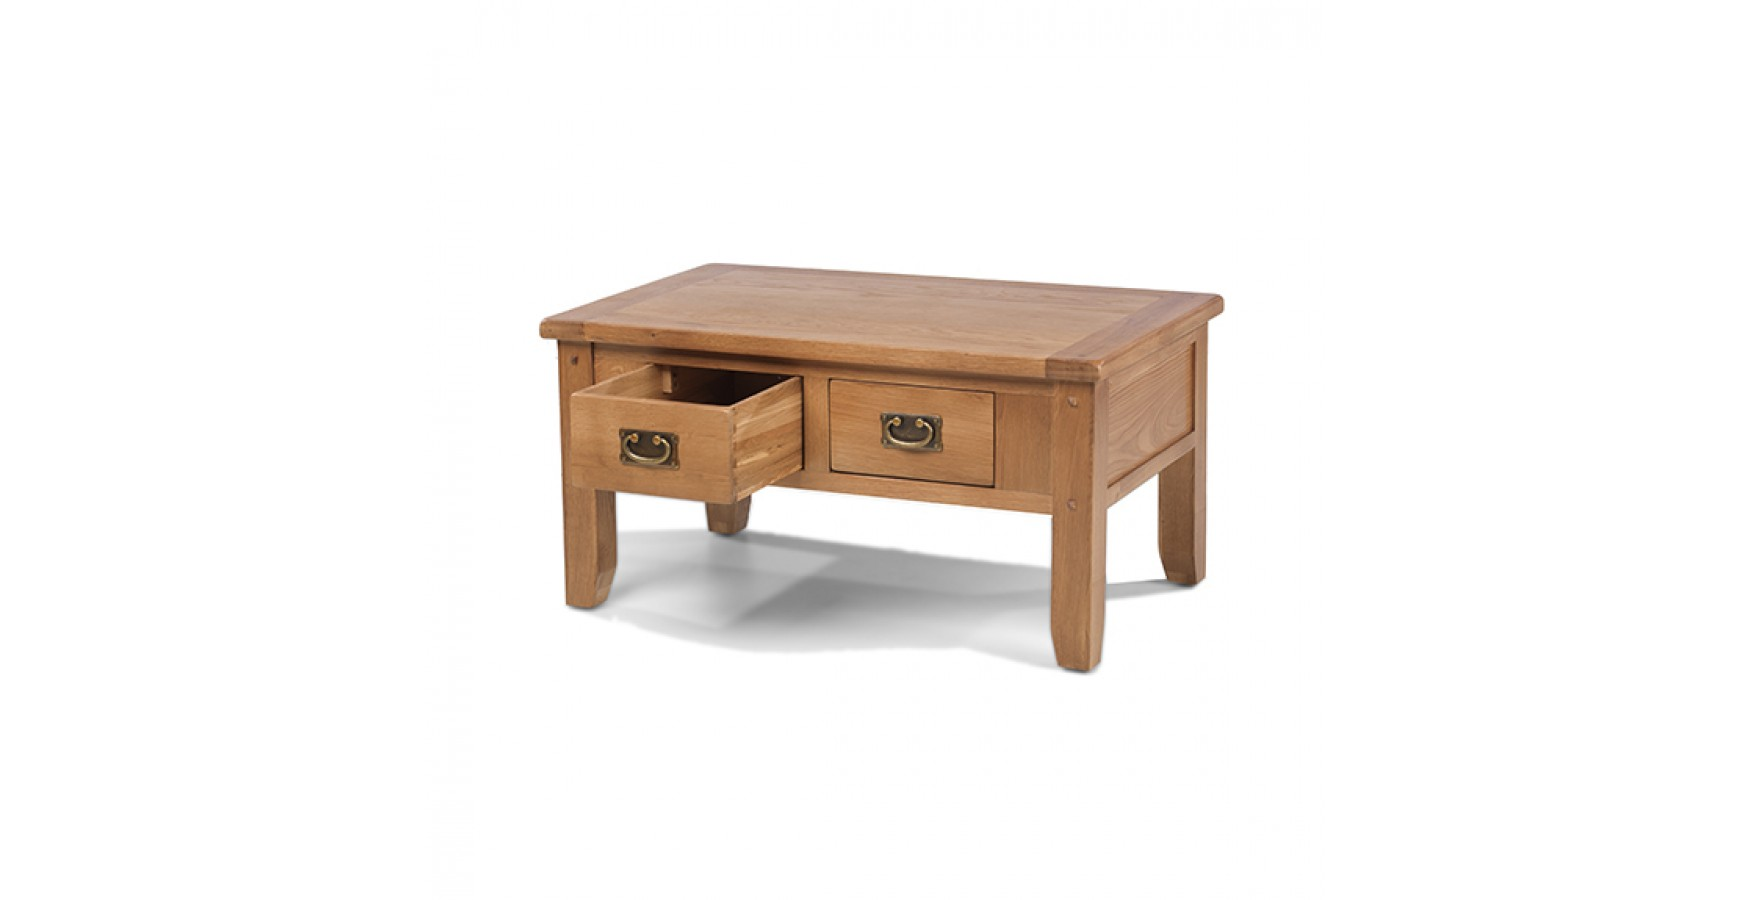 Rustic oak small 2 drawer coffee table lifestyle furniture uk Coffee tables rustic